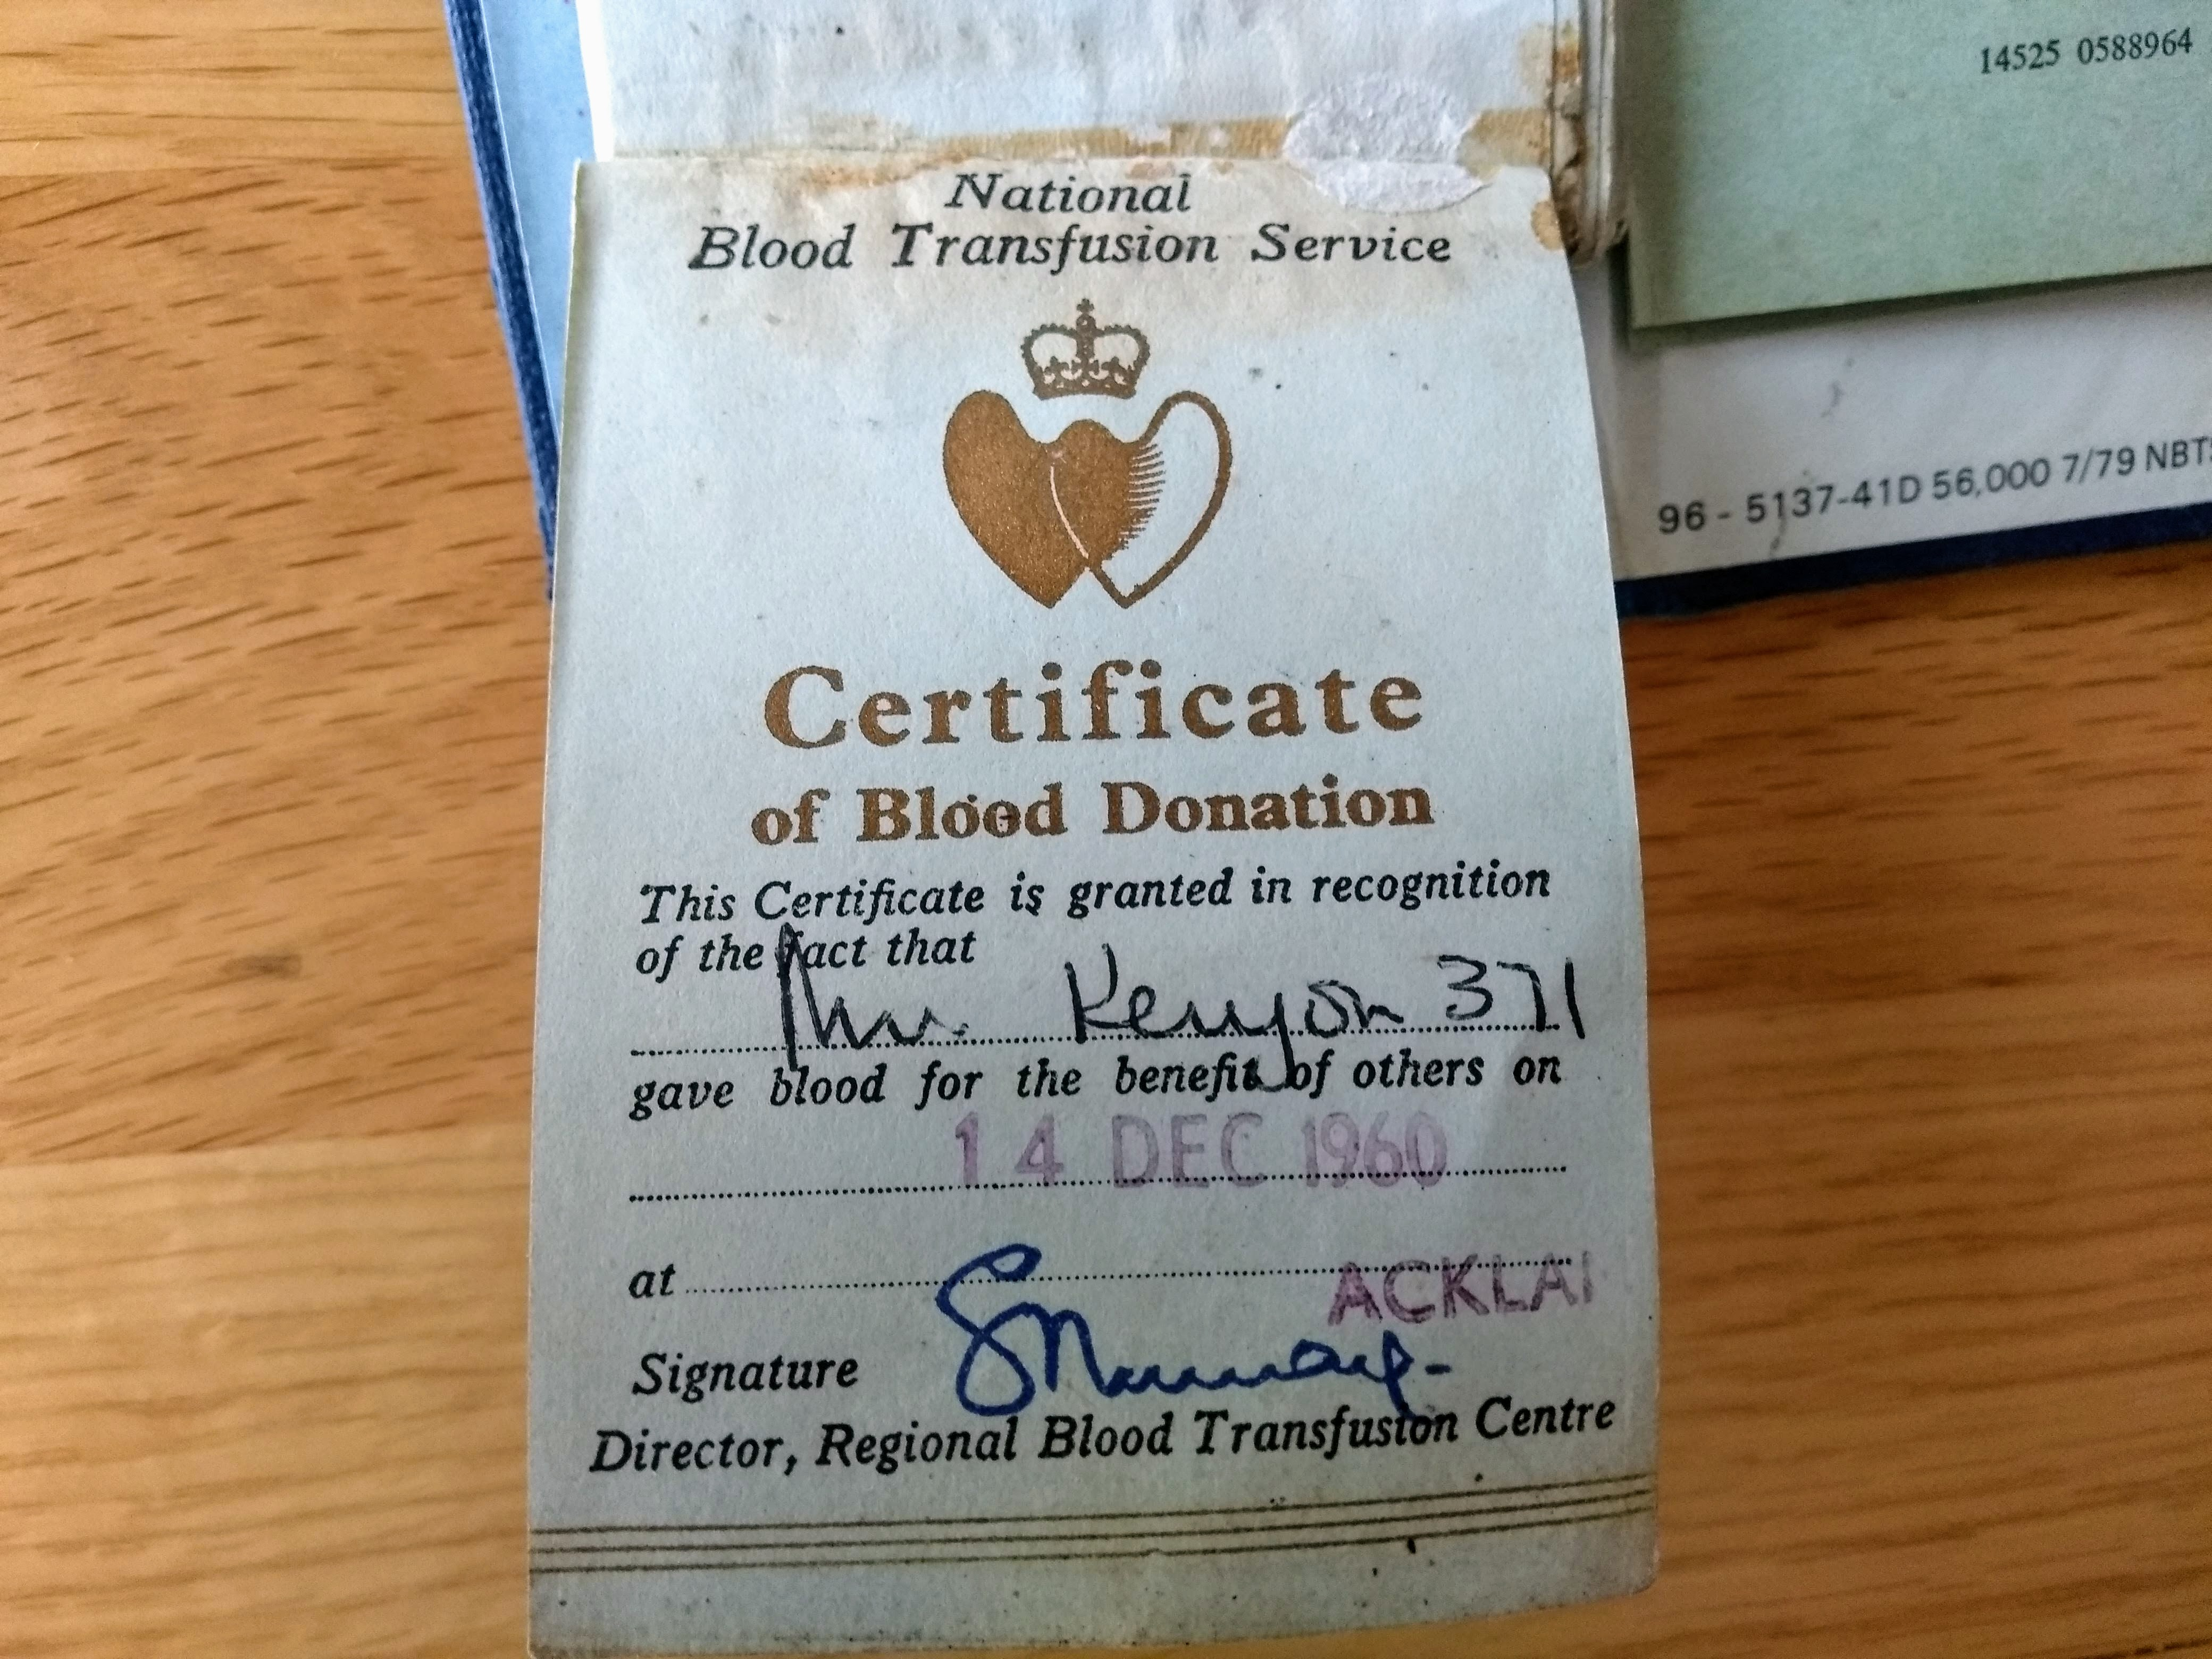 Chris' first donation certificate